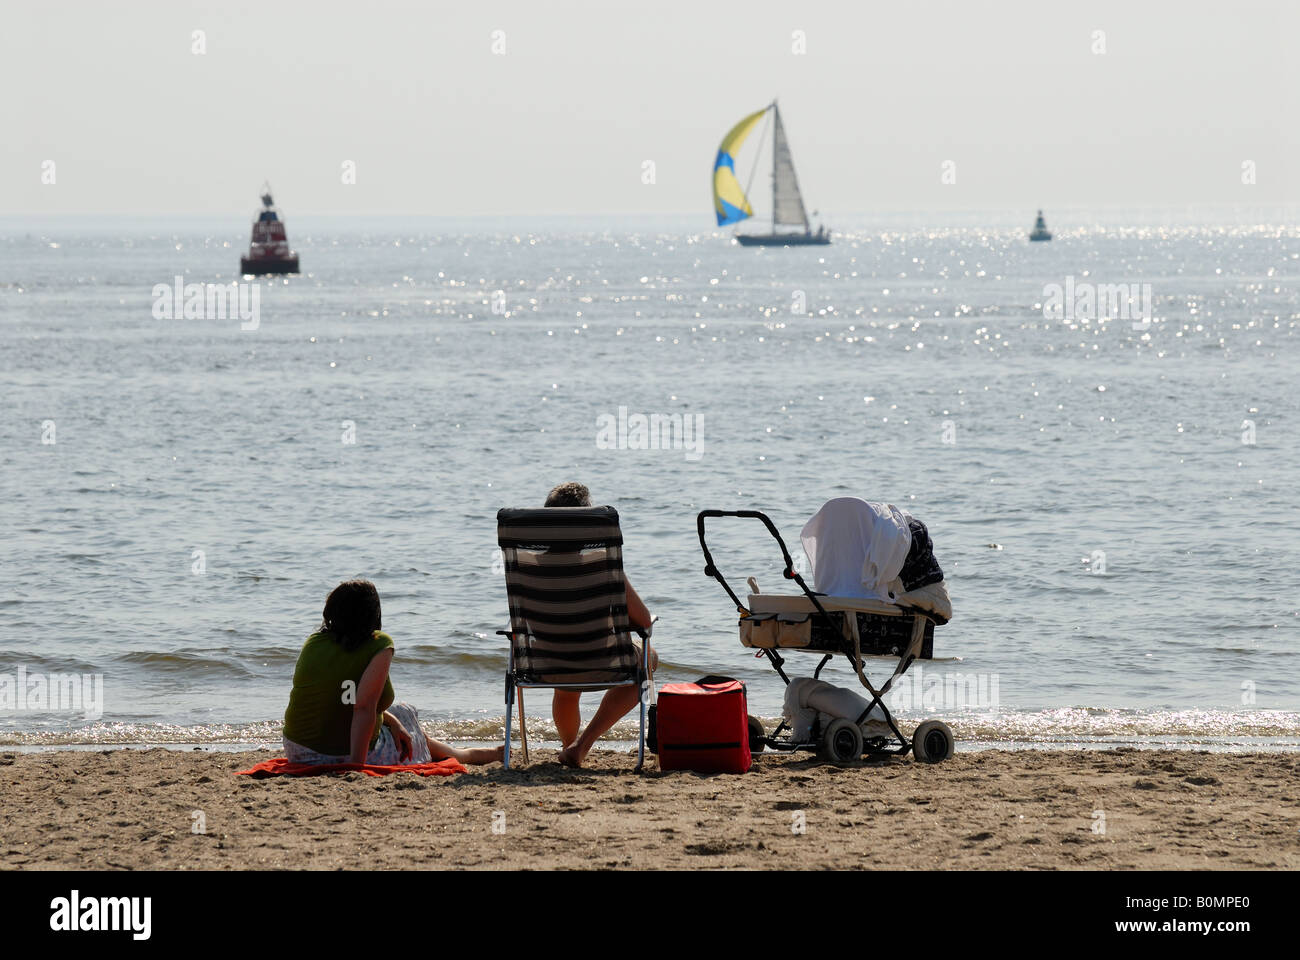 Family on the beach in Netherlands - Stock Image